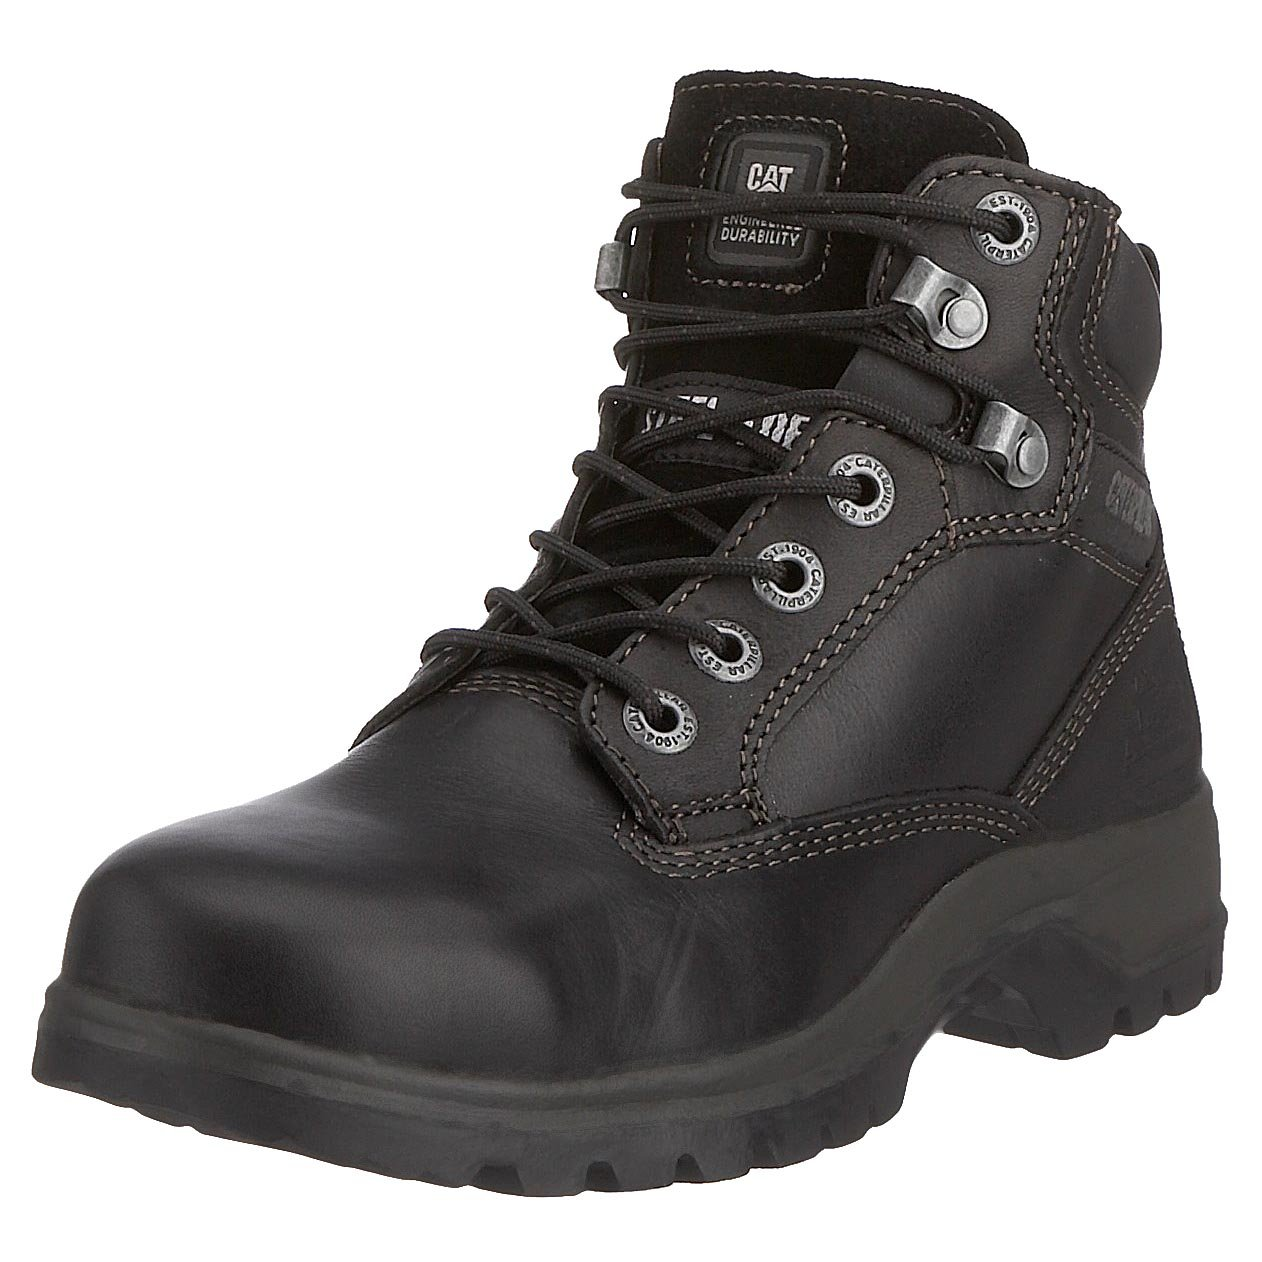 CAT Footwear Women's Kitson S1 Safety Boots p304090_honeym